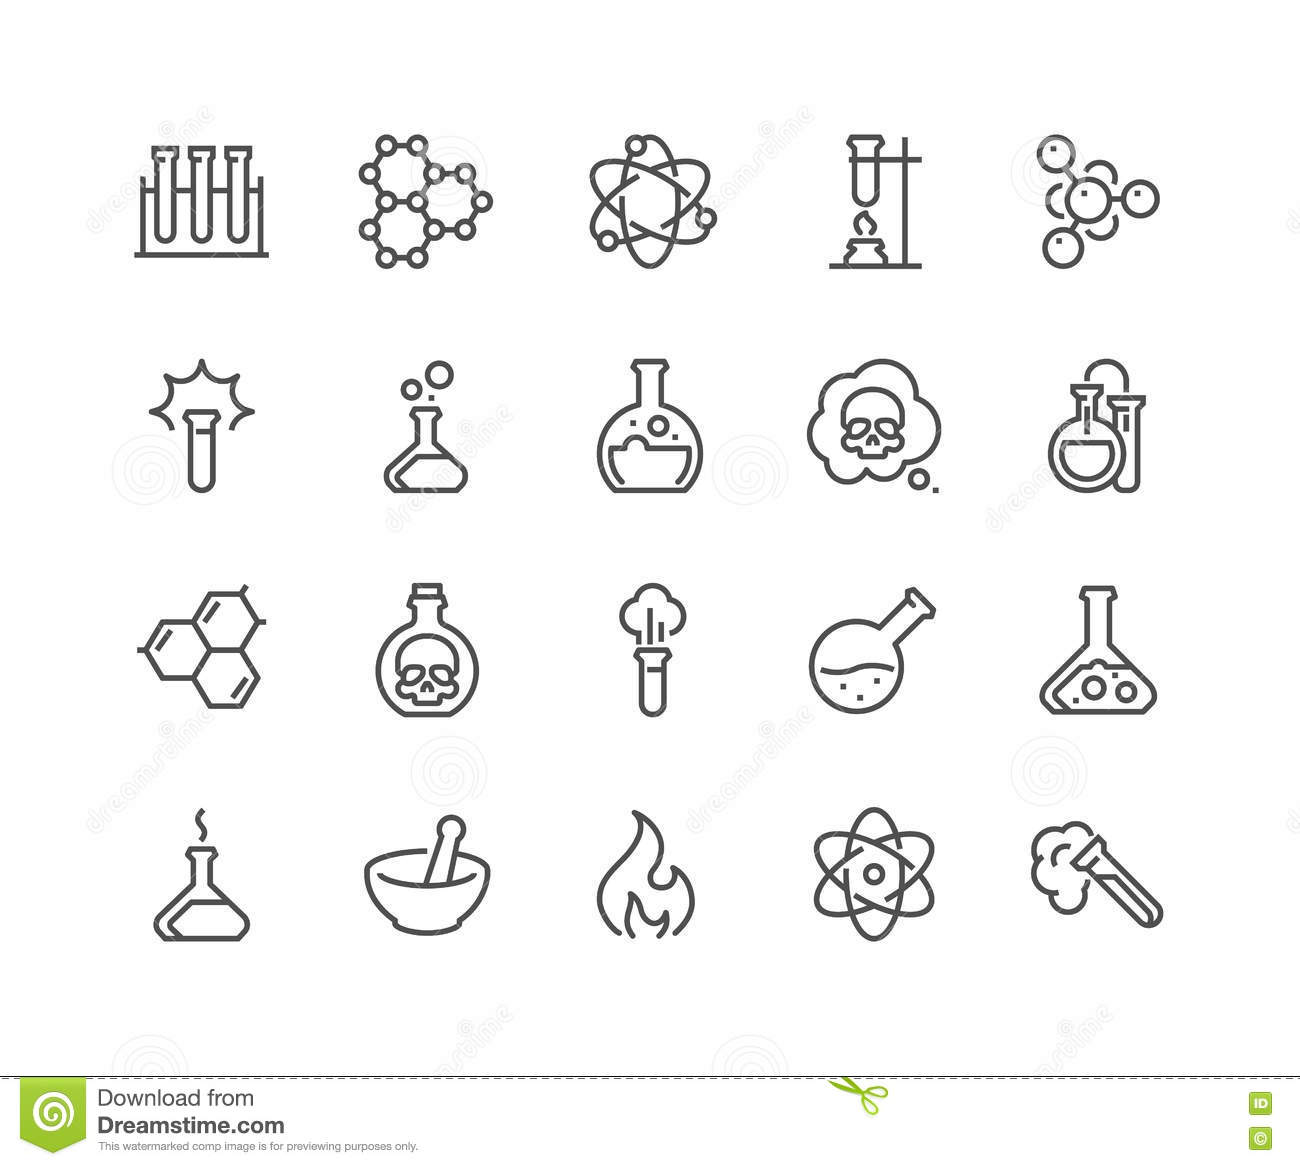 Clipart Empty Test Tube Thin Lines also Stock Illustration Line Chemical Icons Simple Set Related Vector Contains Such As Atom Flask Experiment Research Laboratory More Image74869885 in addition Chemistry Beakers Clipart in addition Princess Printable Clipart besides Bird outline. on flask outline